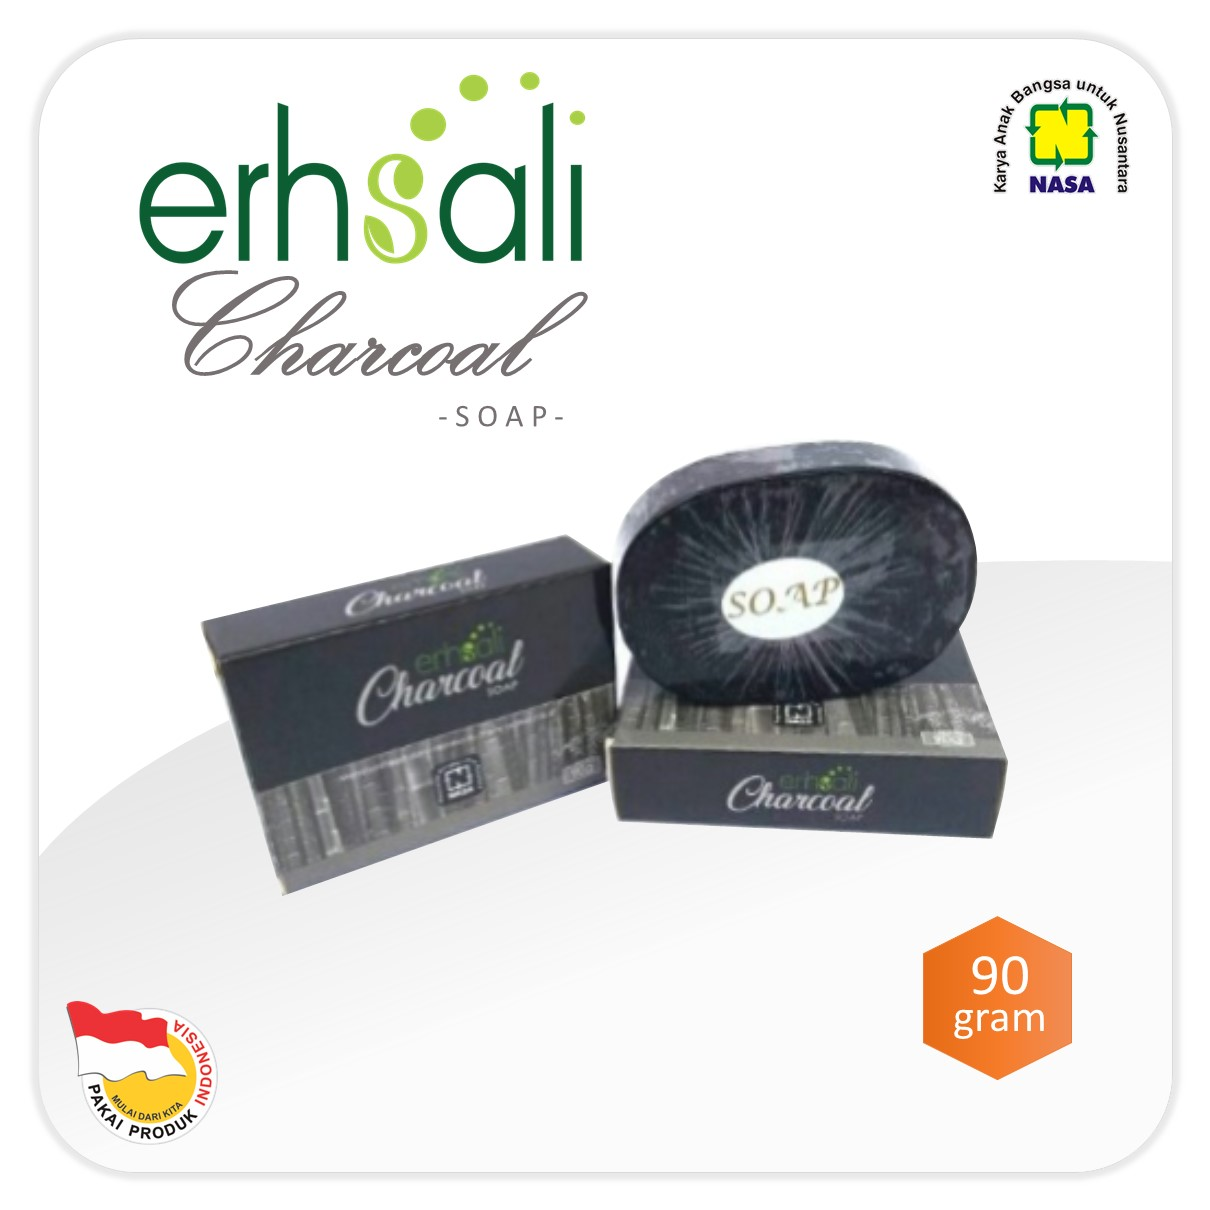 ERHSALI Charcoal Soap